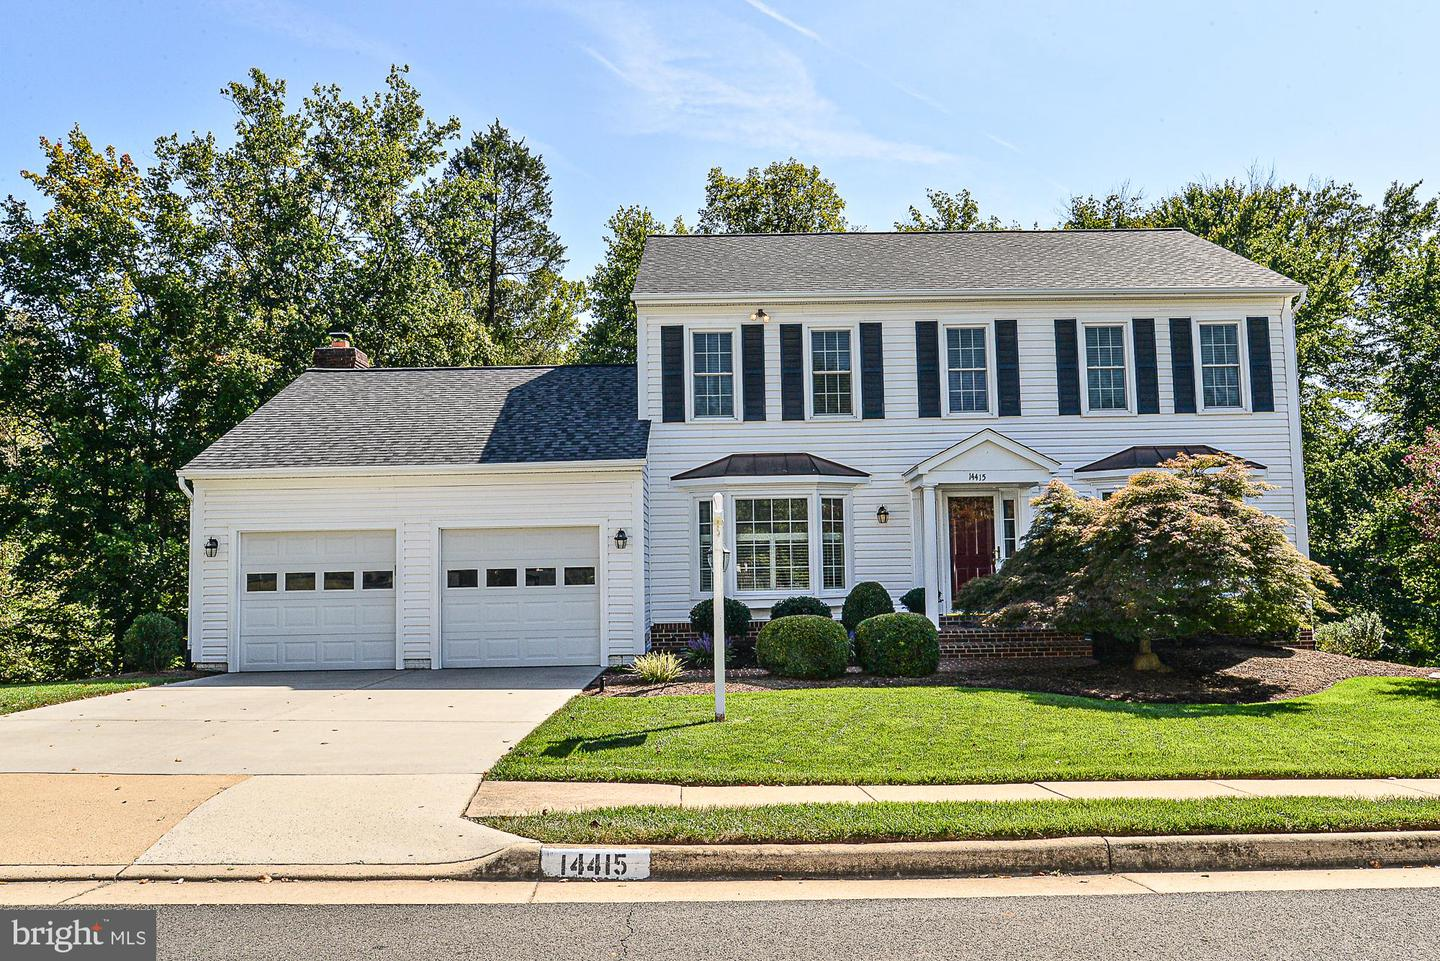 14415 N SLOPE STREET, CENTREVILLE, Virginia